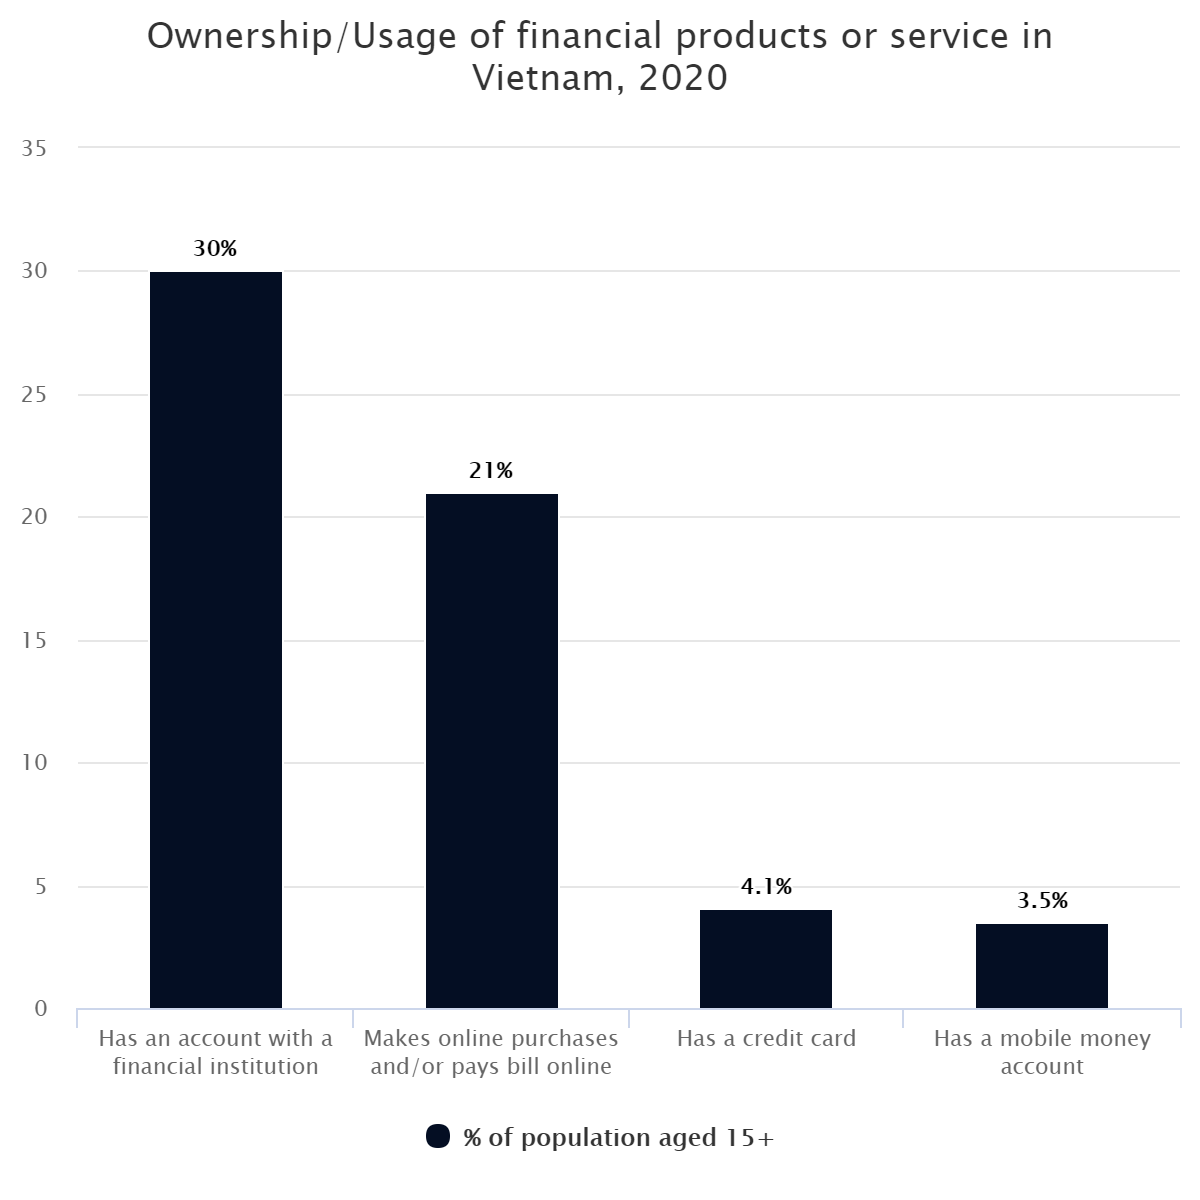 Ownership/Usage of financial products or service in Vietnam, 2020